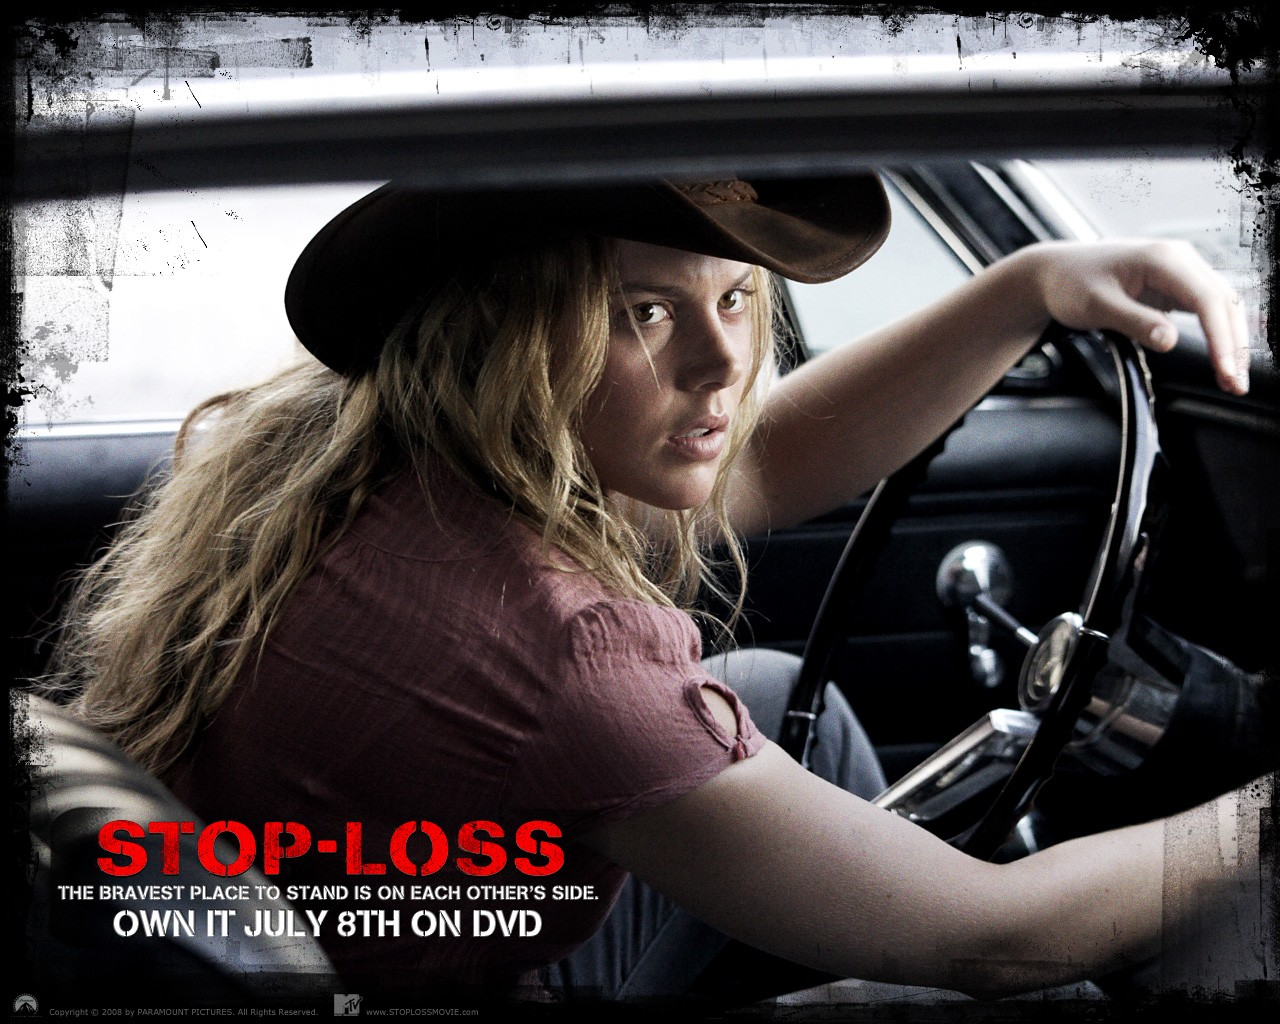 Un wallpaper ufficiale del film Stop Loss, con Abbie Cornish